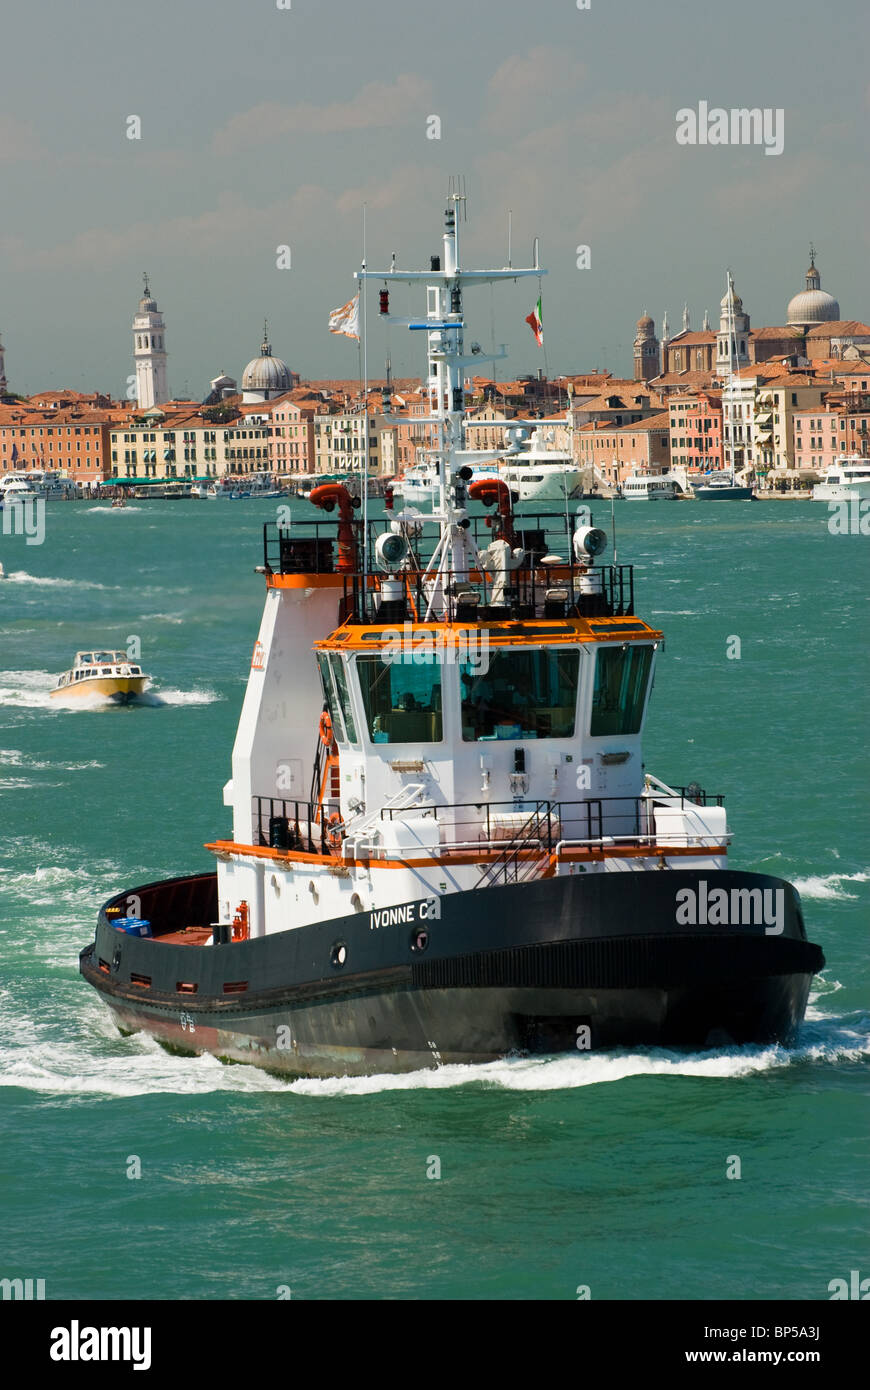 Tug boat on Canale della Giudecca, the approach to Venice, Italy near Lido di Venezia.. - Stock Image